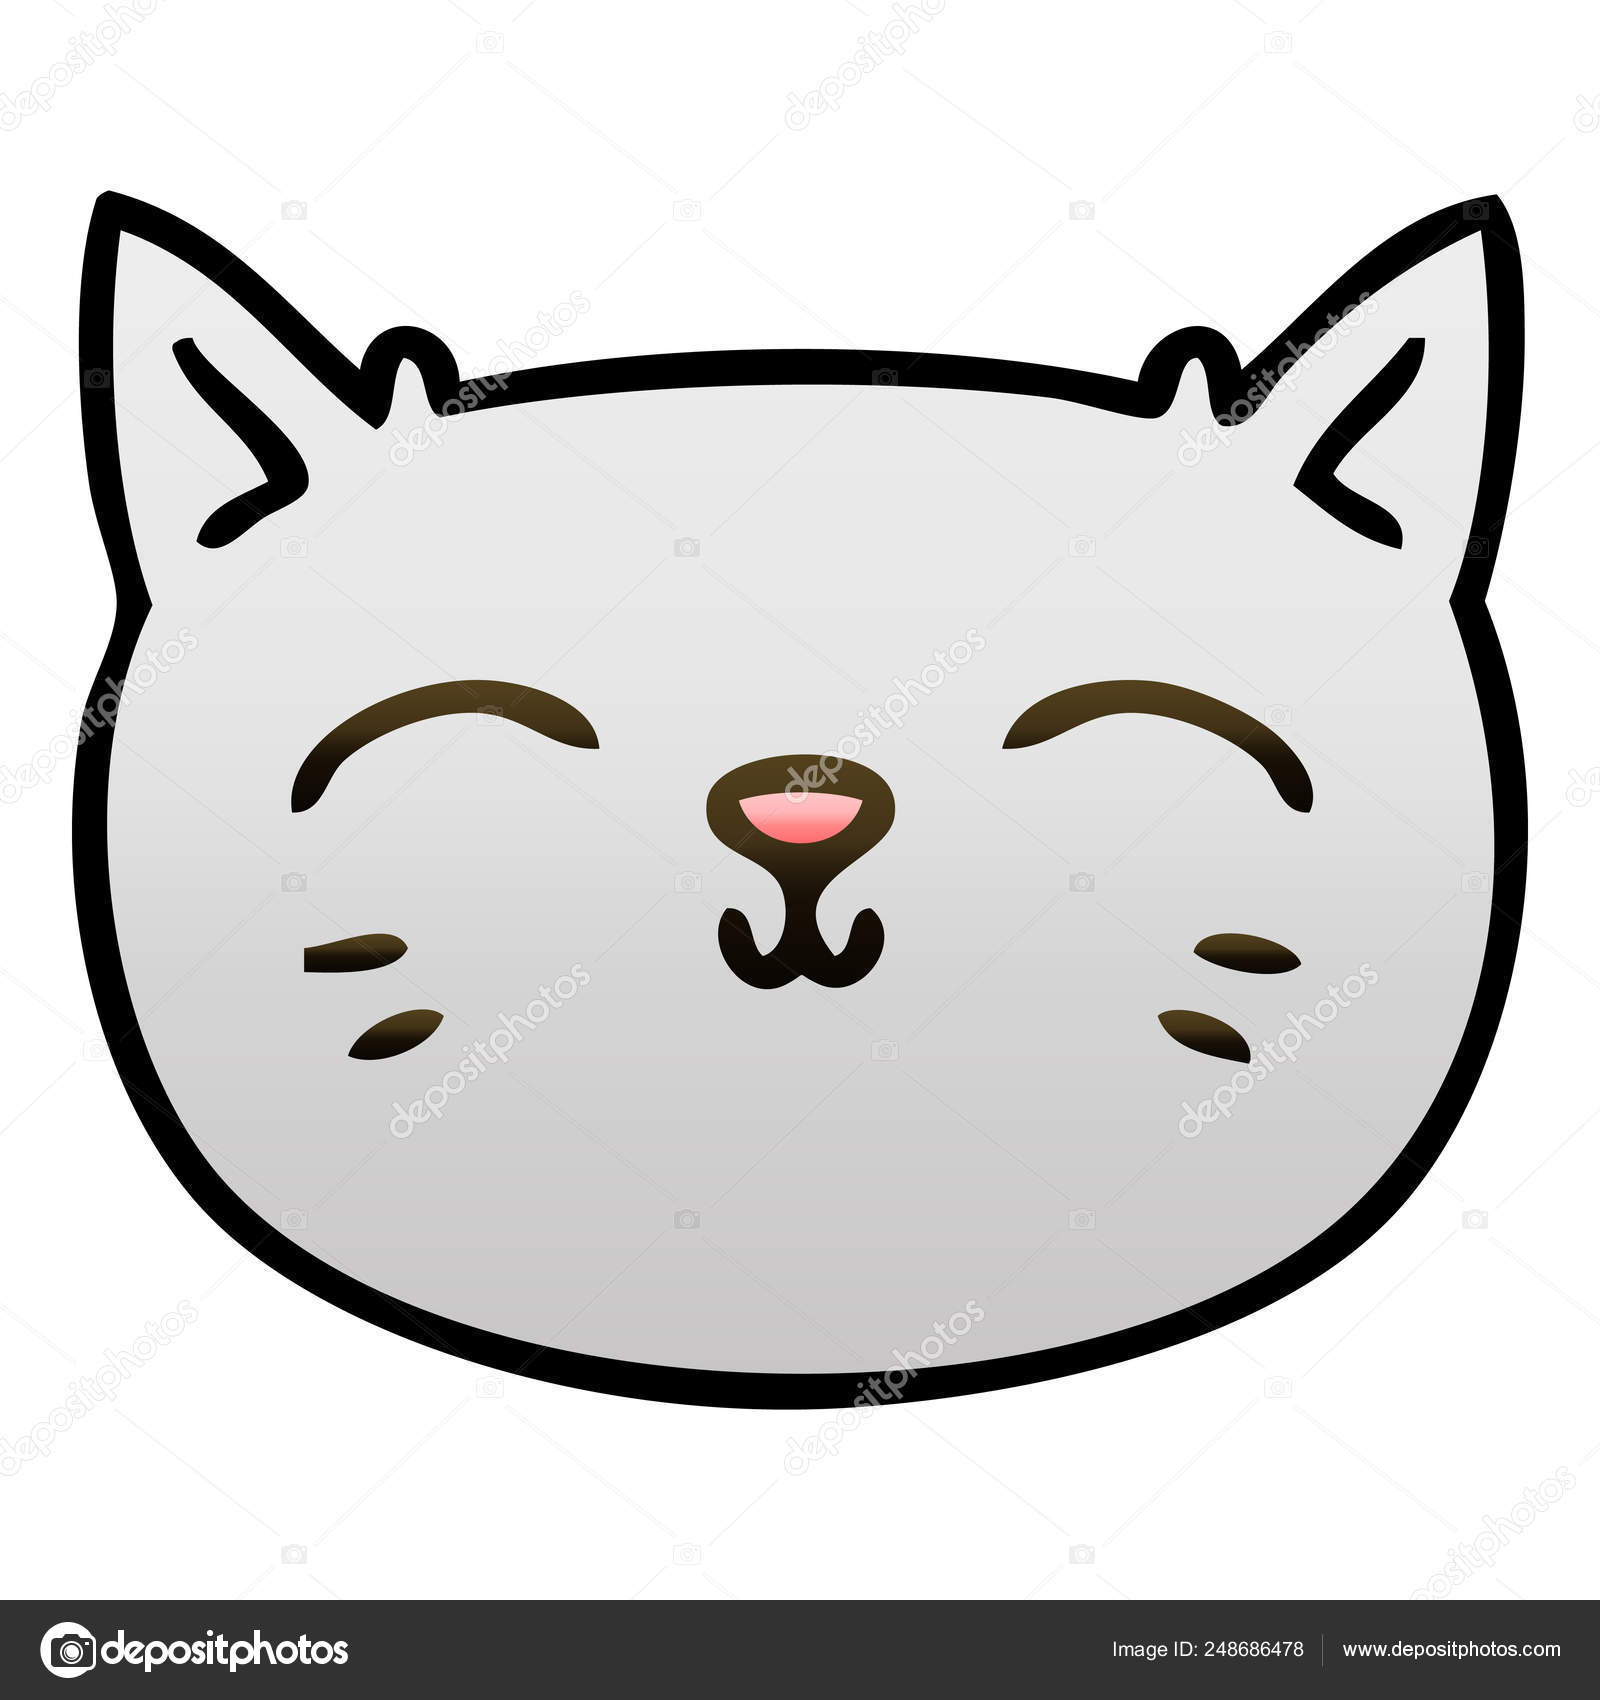 Quirky Gradient Shaded Cartoon Cat Face Stock Vector